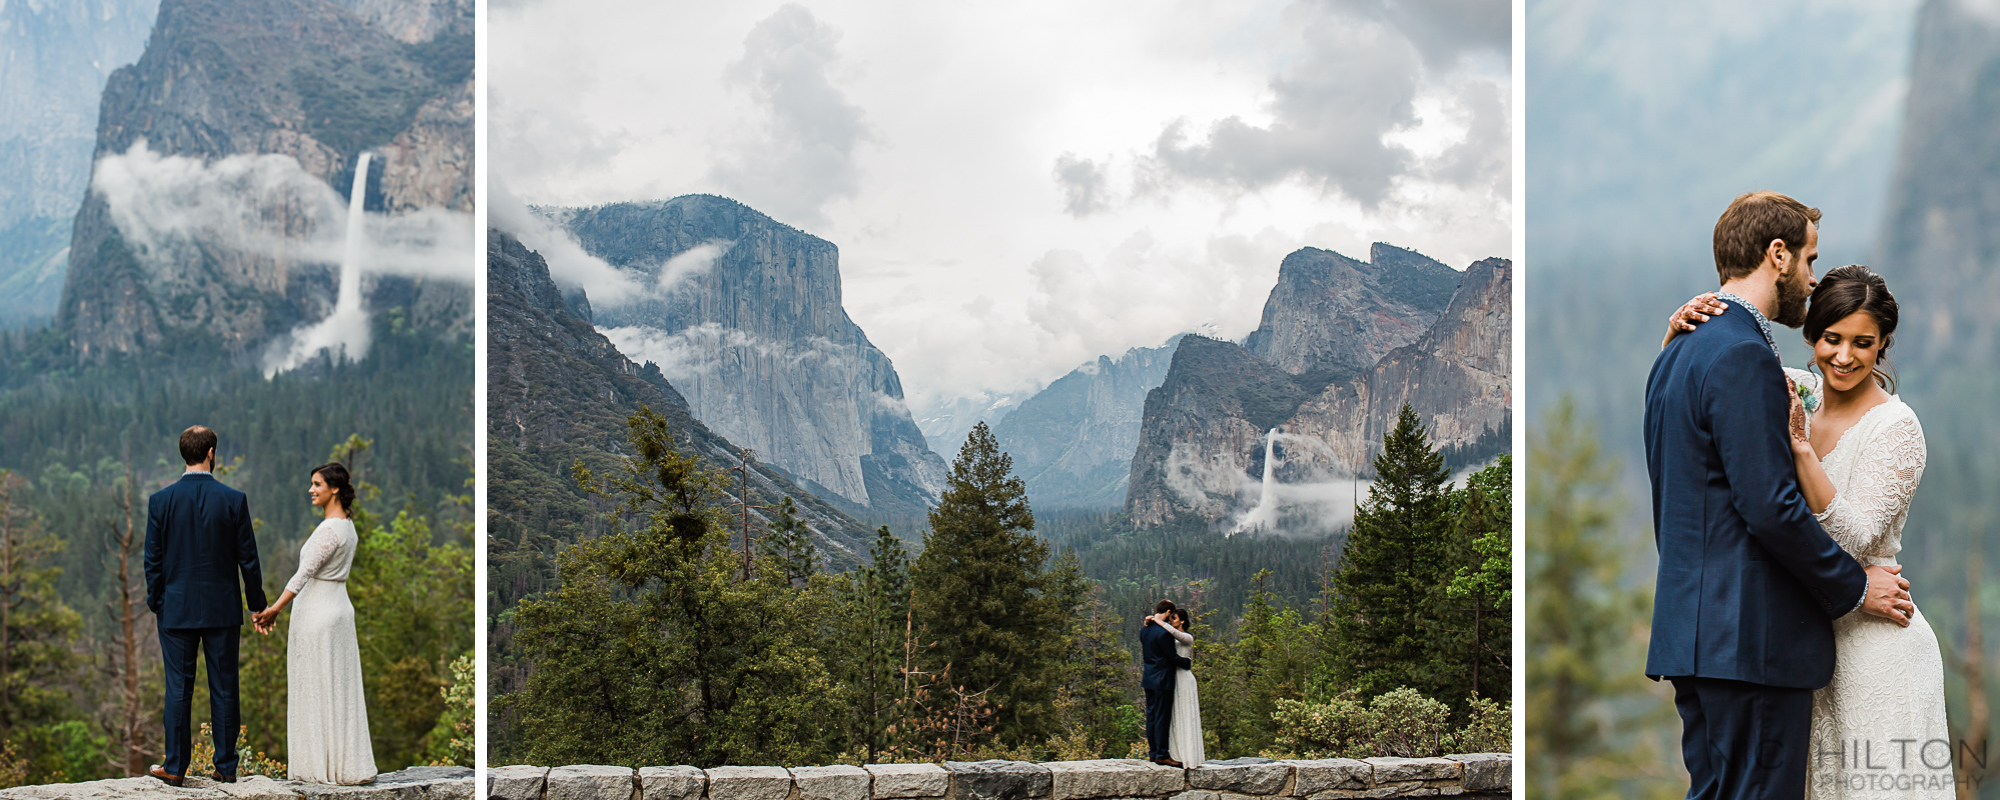 Tunnel-View-Yosemite-Elopement-Photography.jpg